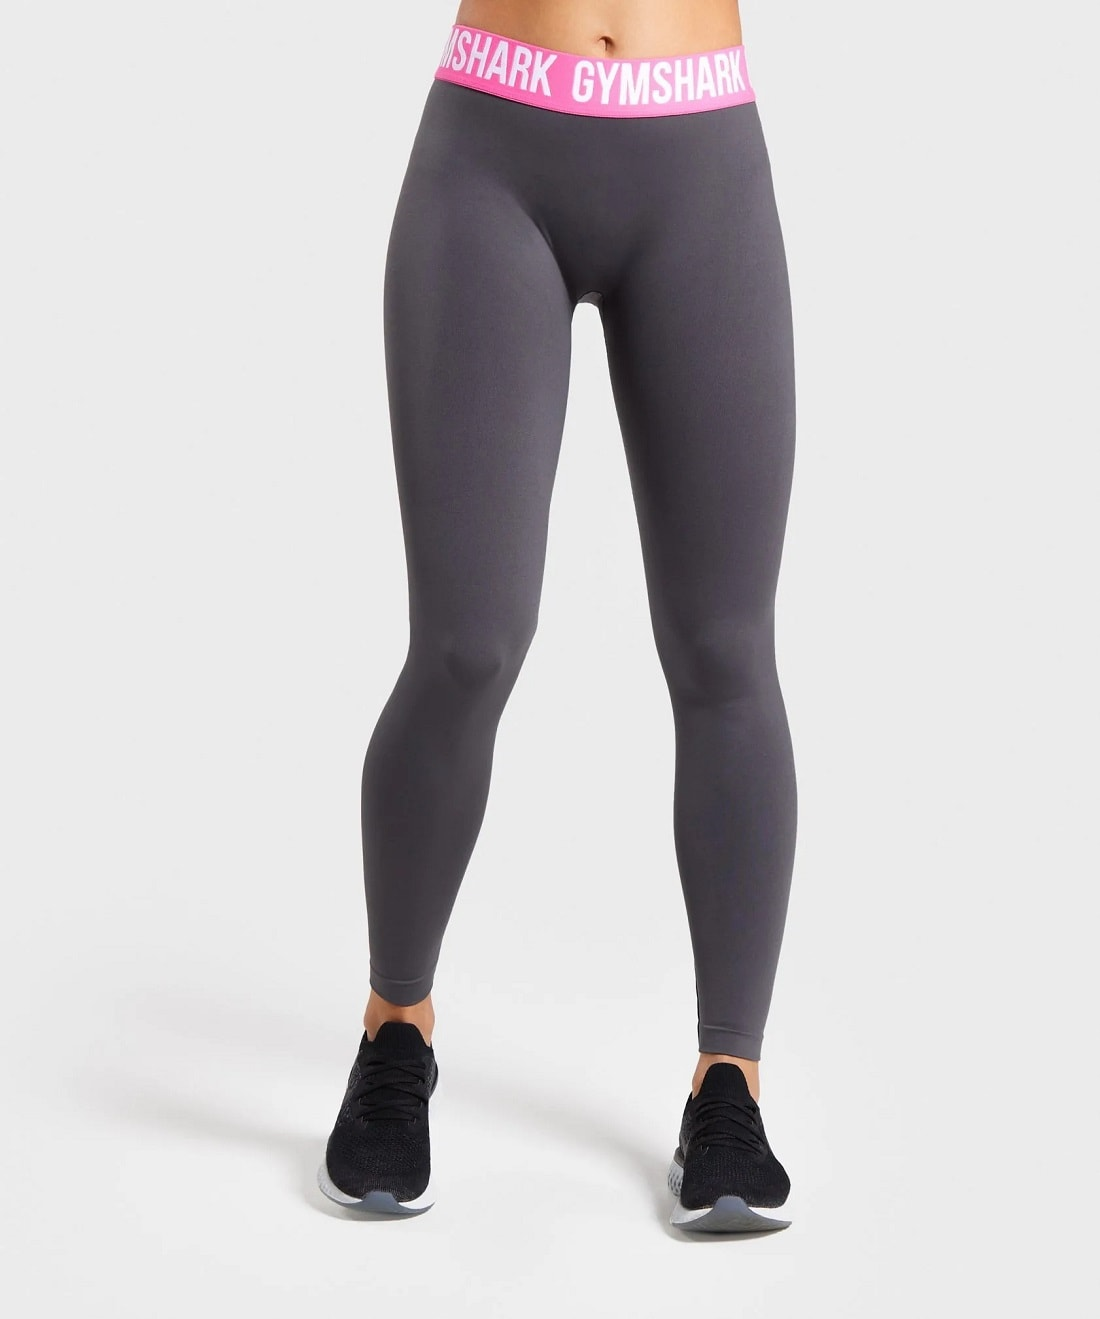 Best Gymshark Leggings for Hiit and Plus Size